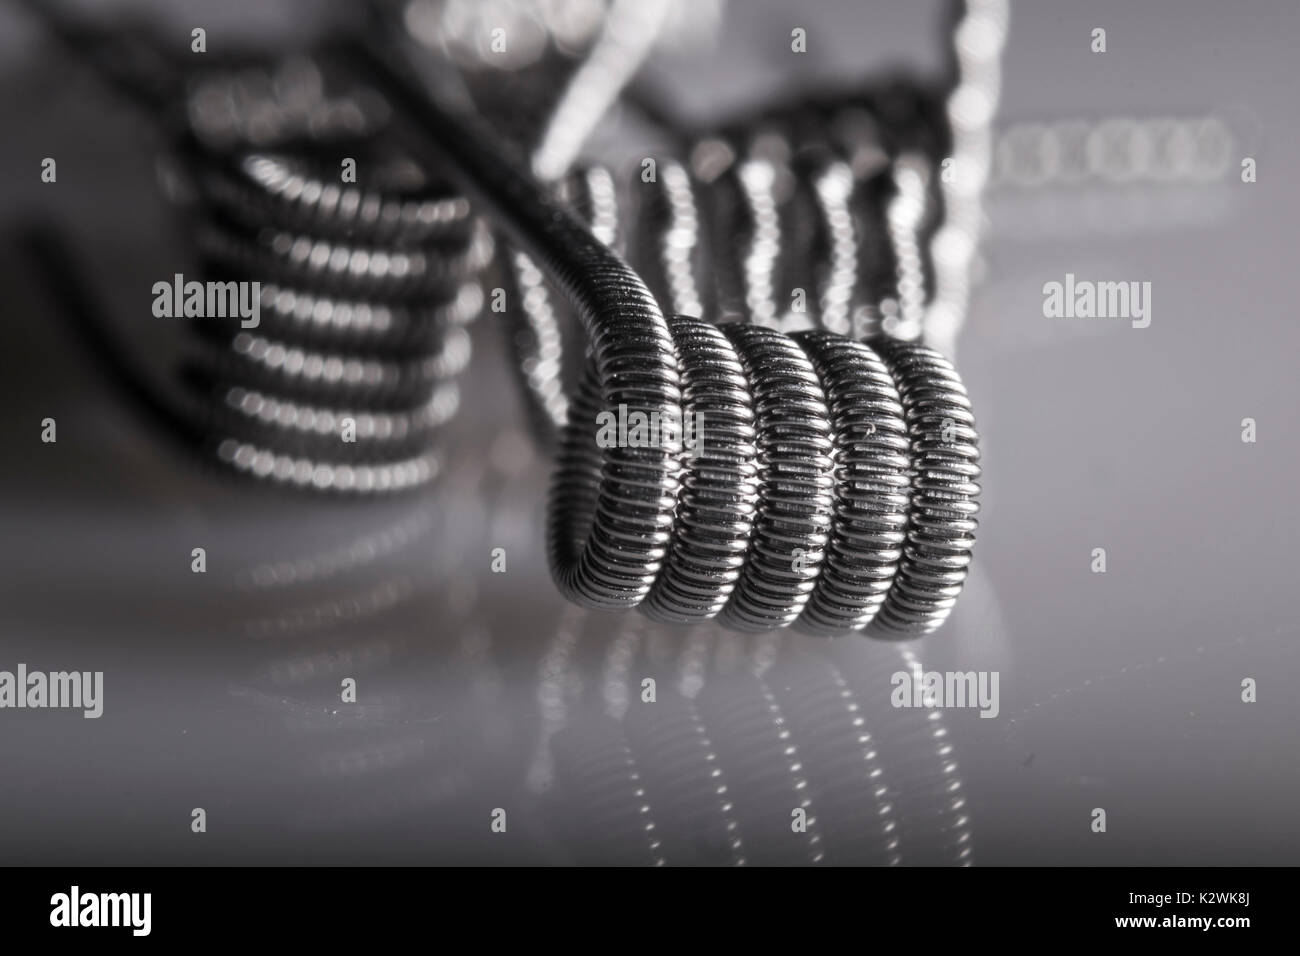 Alien Clapton coils example for vaping with electronic cigarette, e cig, ecigarette. - Stock Image